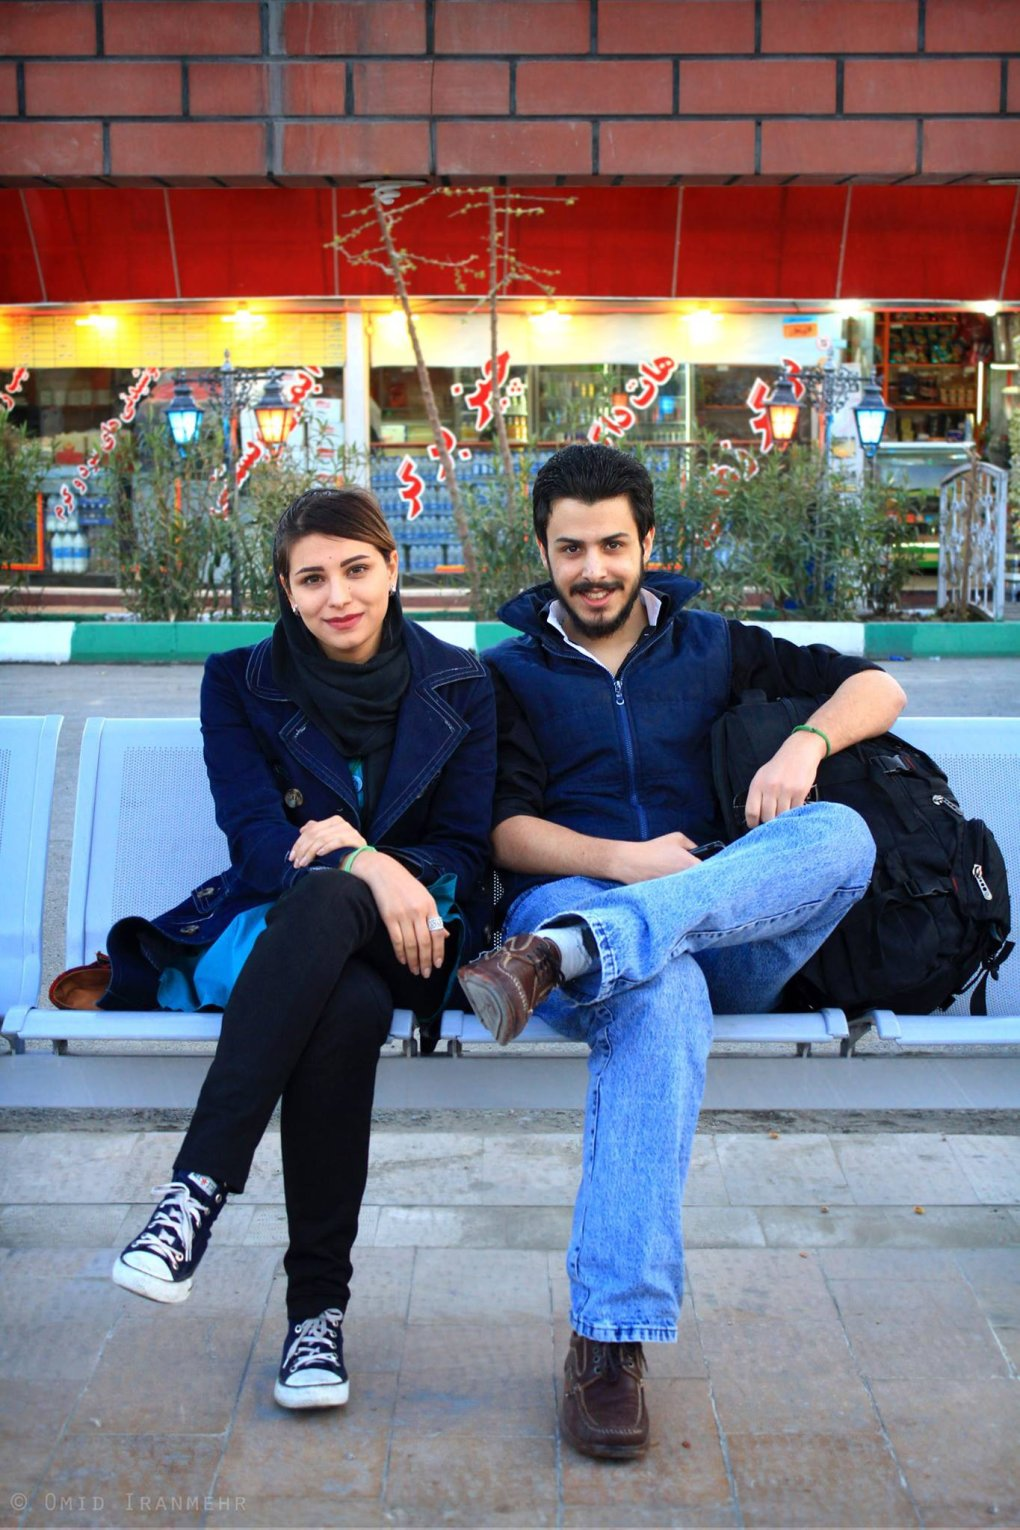 inpg5jc - rarely seen photos of my great city tehran,iran and its' beautiful people